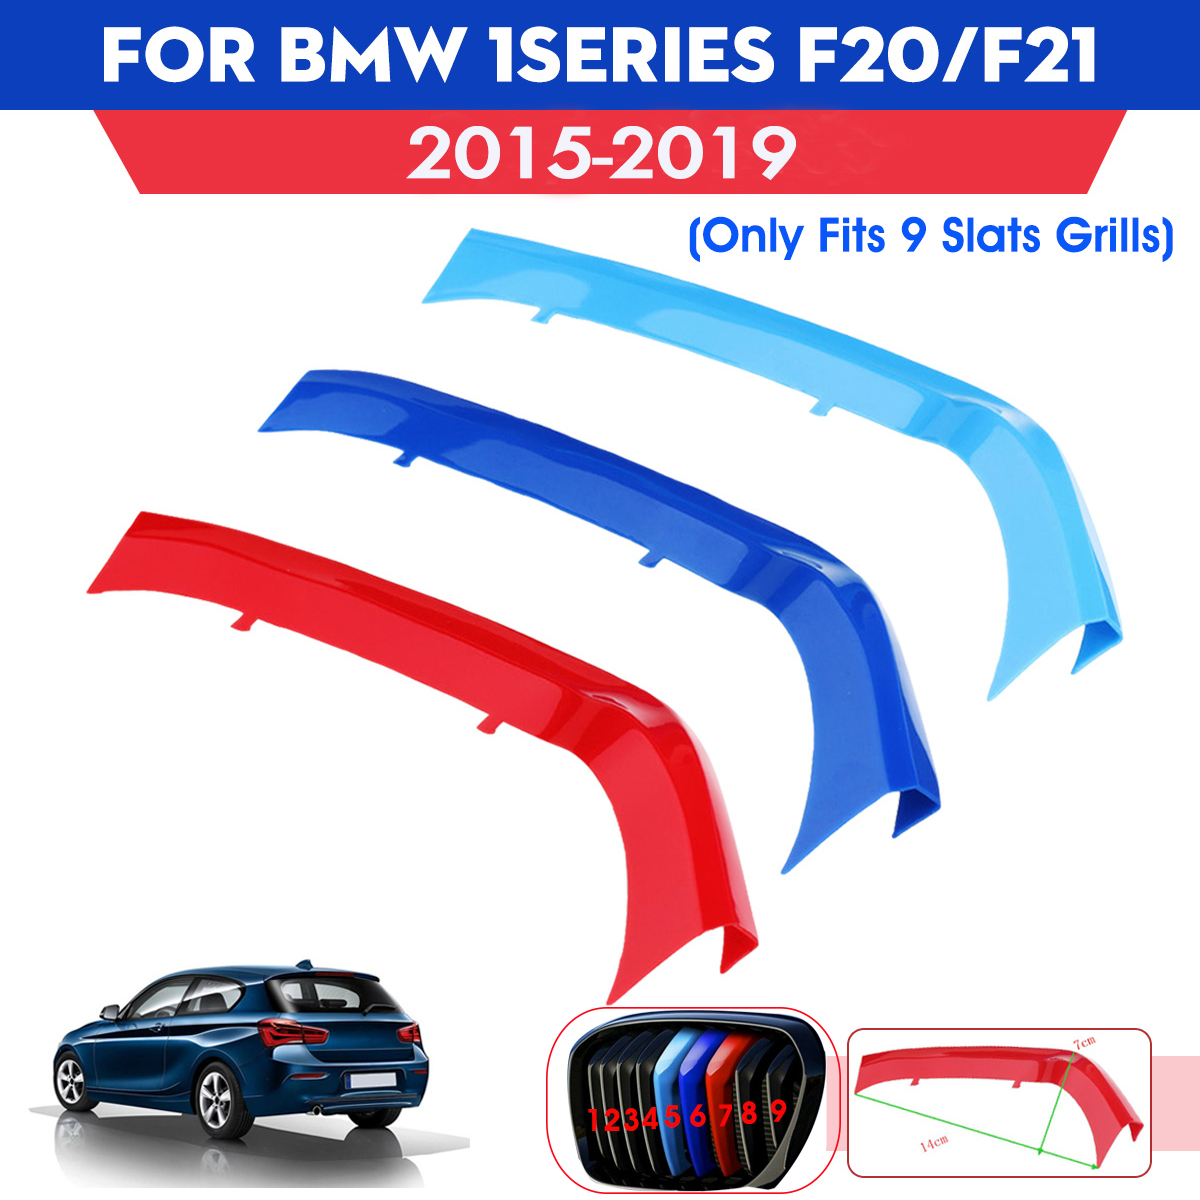 3Pcs Tricolor Plastic Car Front Center Grille Cover Trim <font><b>Sticker</b></font> Strip For <font><b>BMW</b></font> 1Series F20/<font><b>F21</b></font> 2015-2018 image